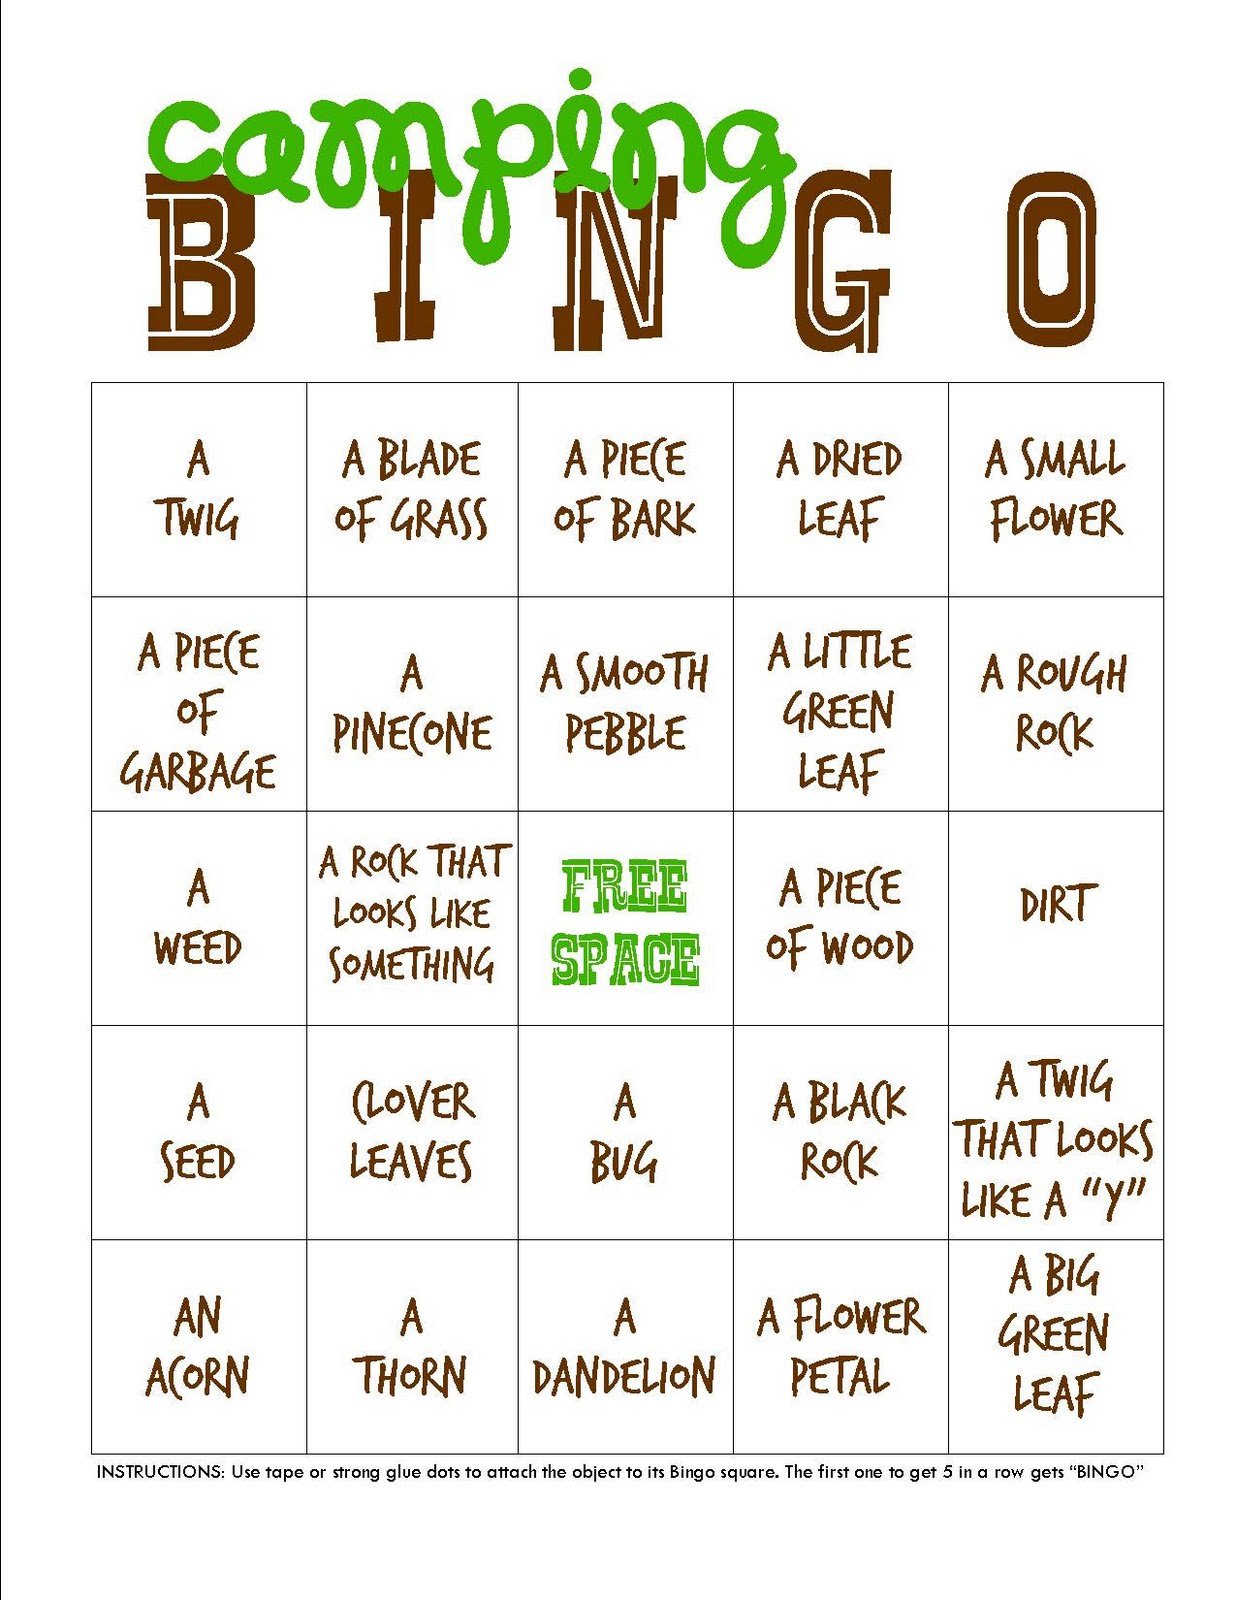 These Are The Same Bingo Cards With Different Titles So You Can Choose What Want To Use Which Ever Adventure Camping